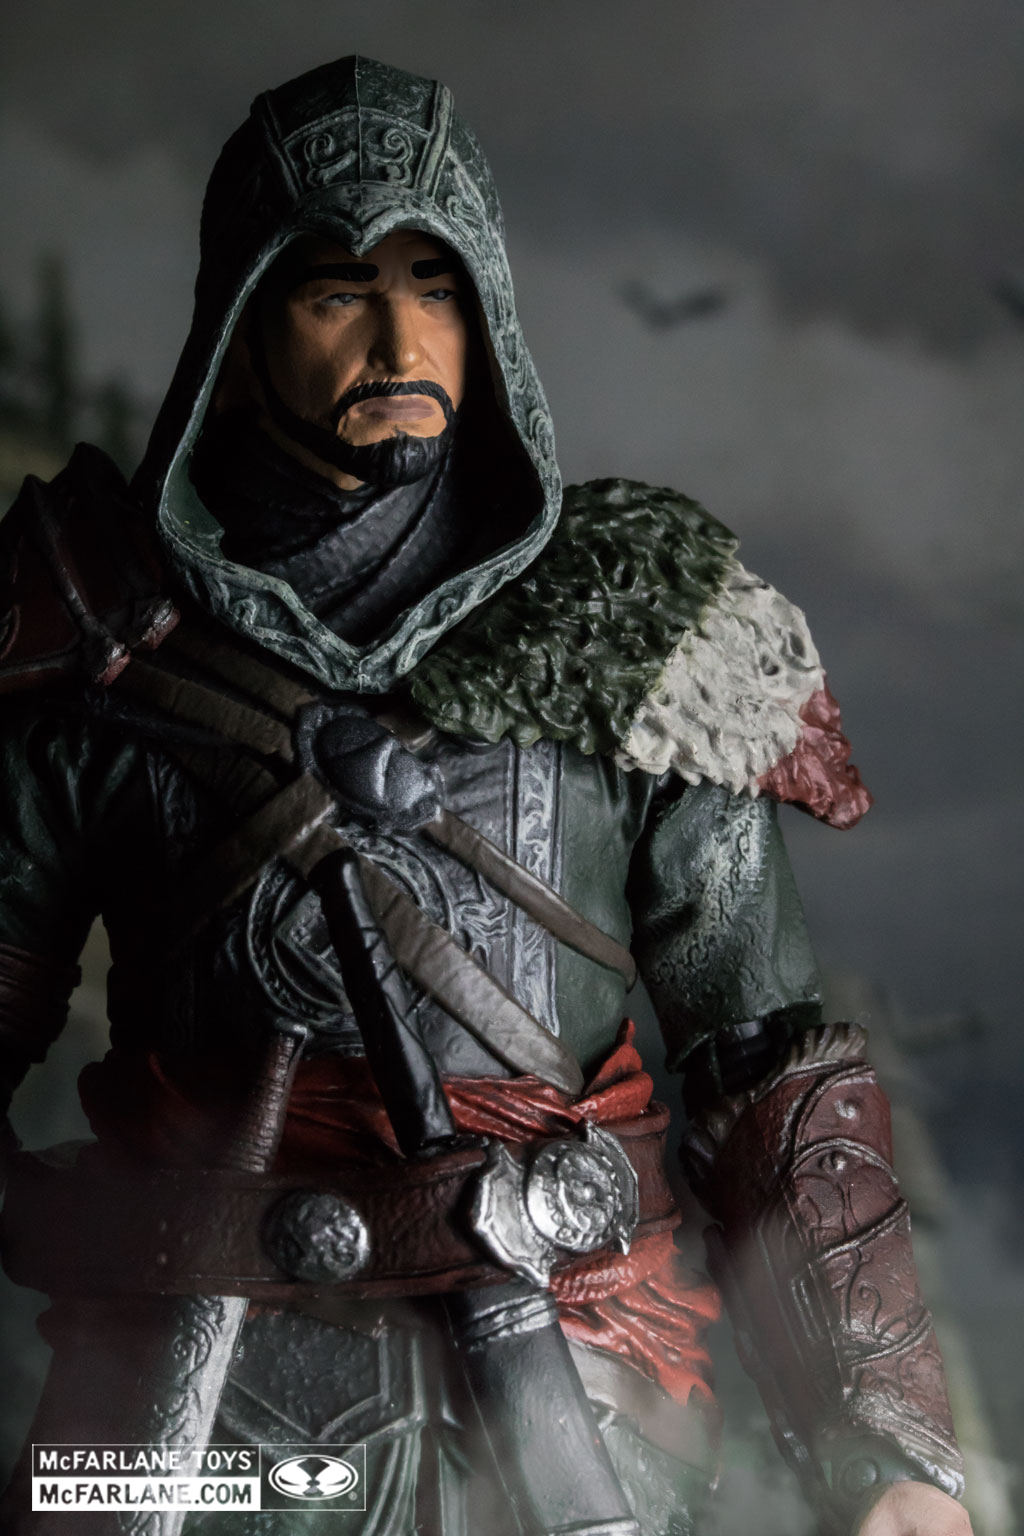 ezio auditore dating profile Assassin's creed ii is the sequel to the assassin's creed game,  ezio auditore da firenze  (ie stealing or high profile kills),.